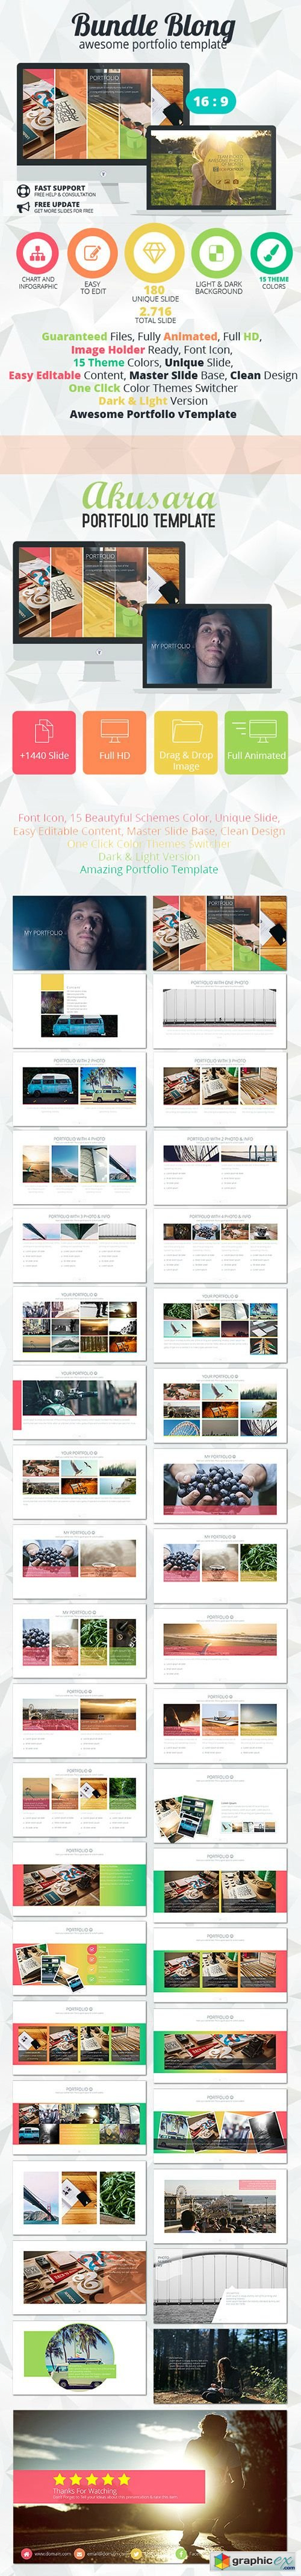 Bundle Blong - Awesome Portfolio Template